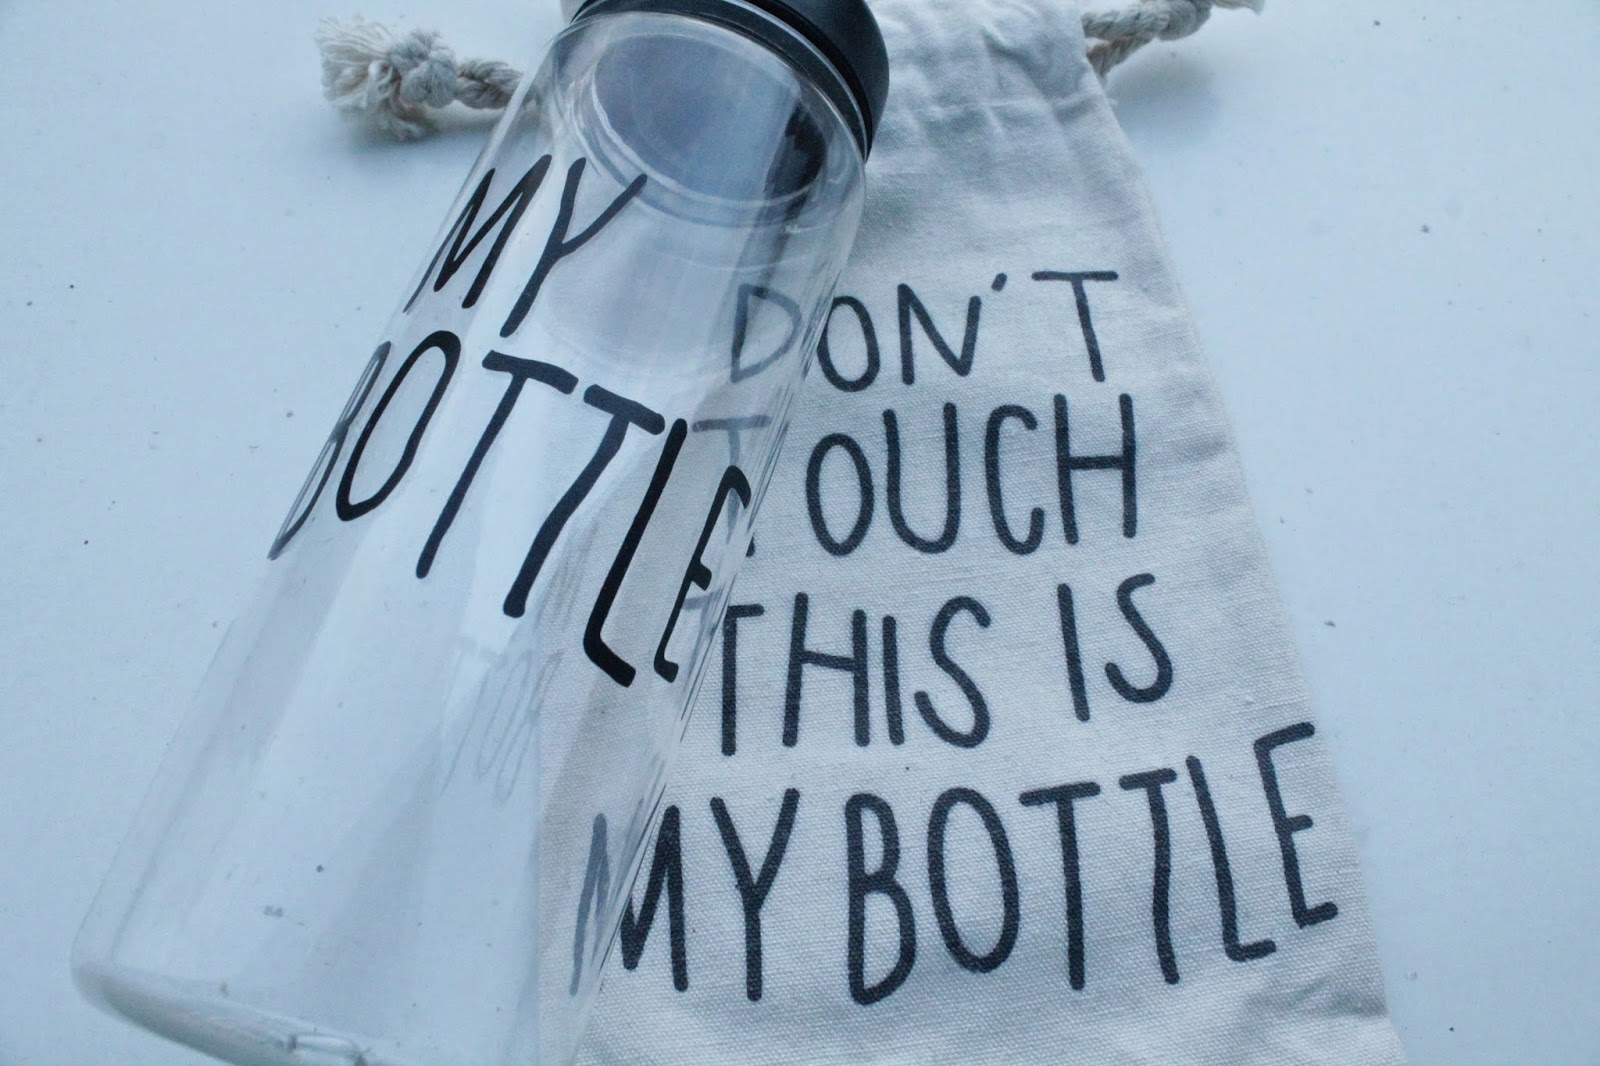 #My bottle